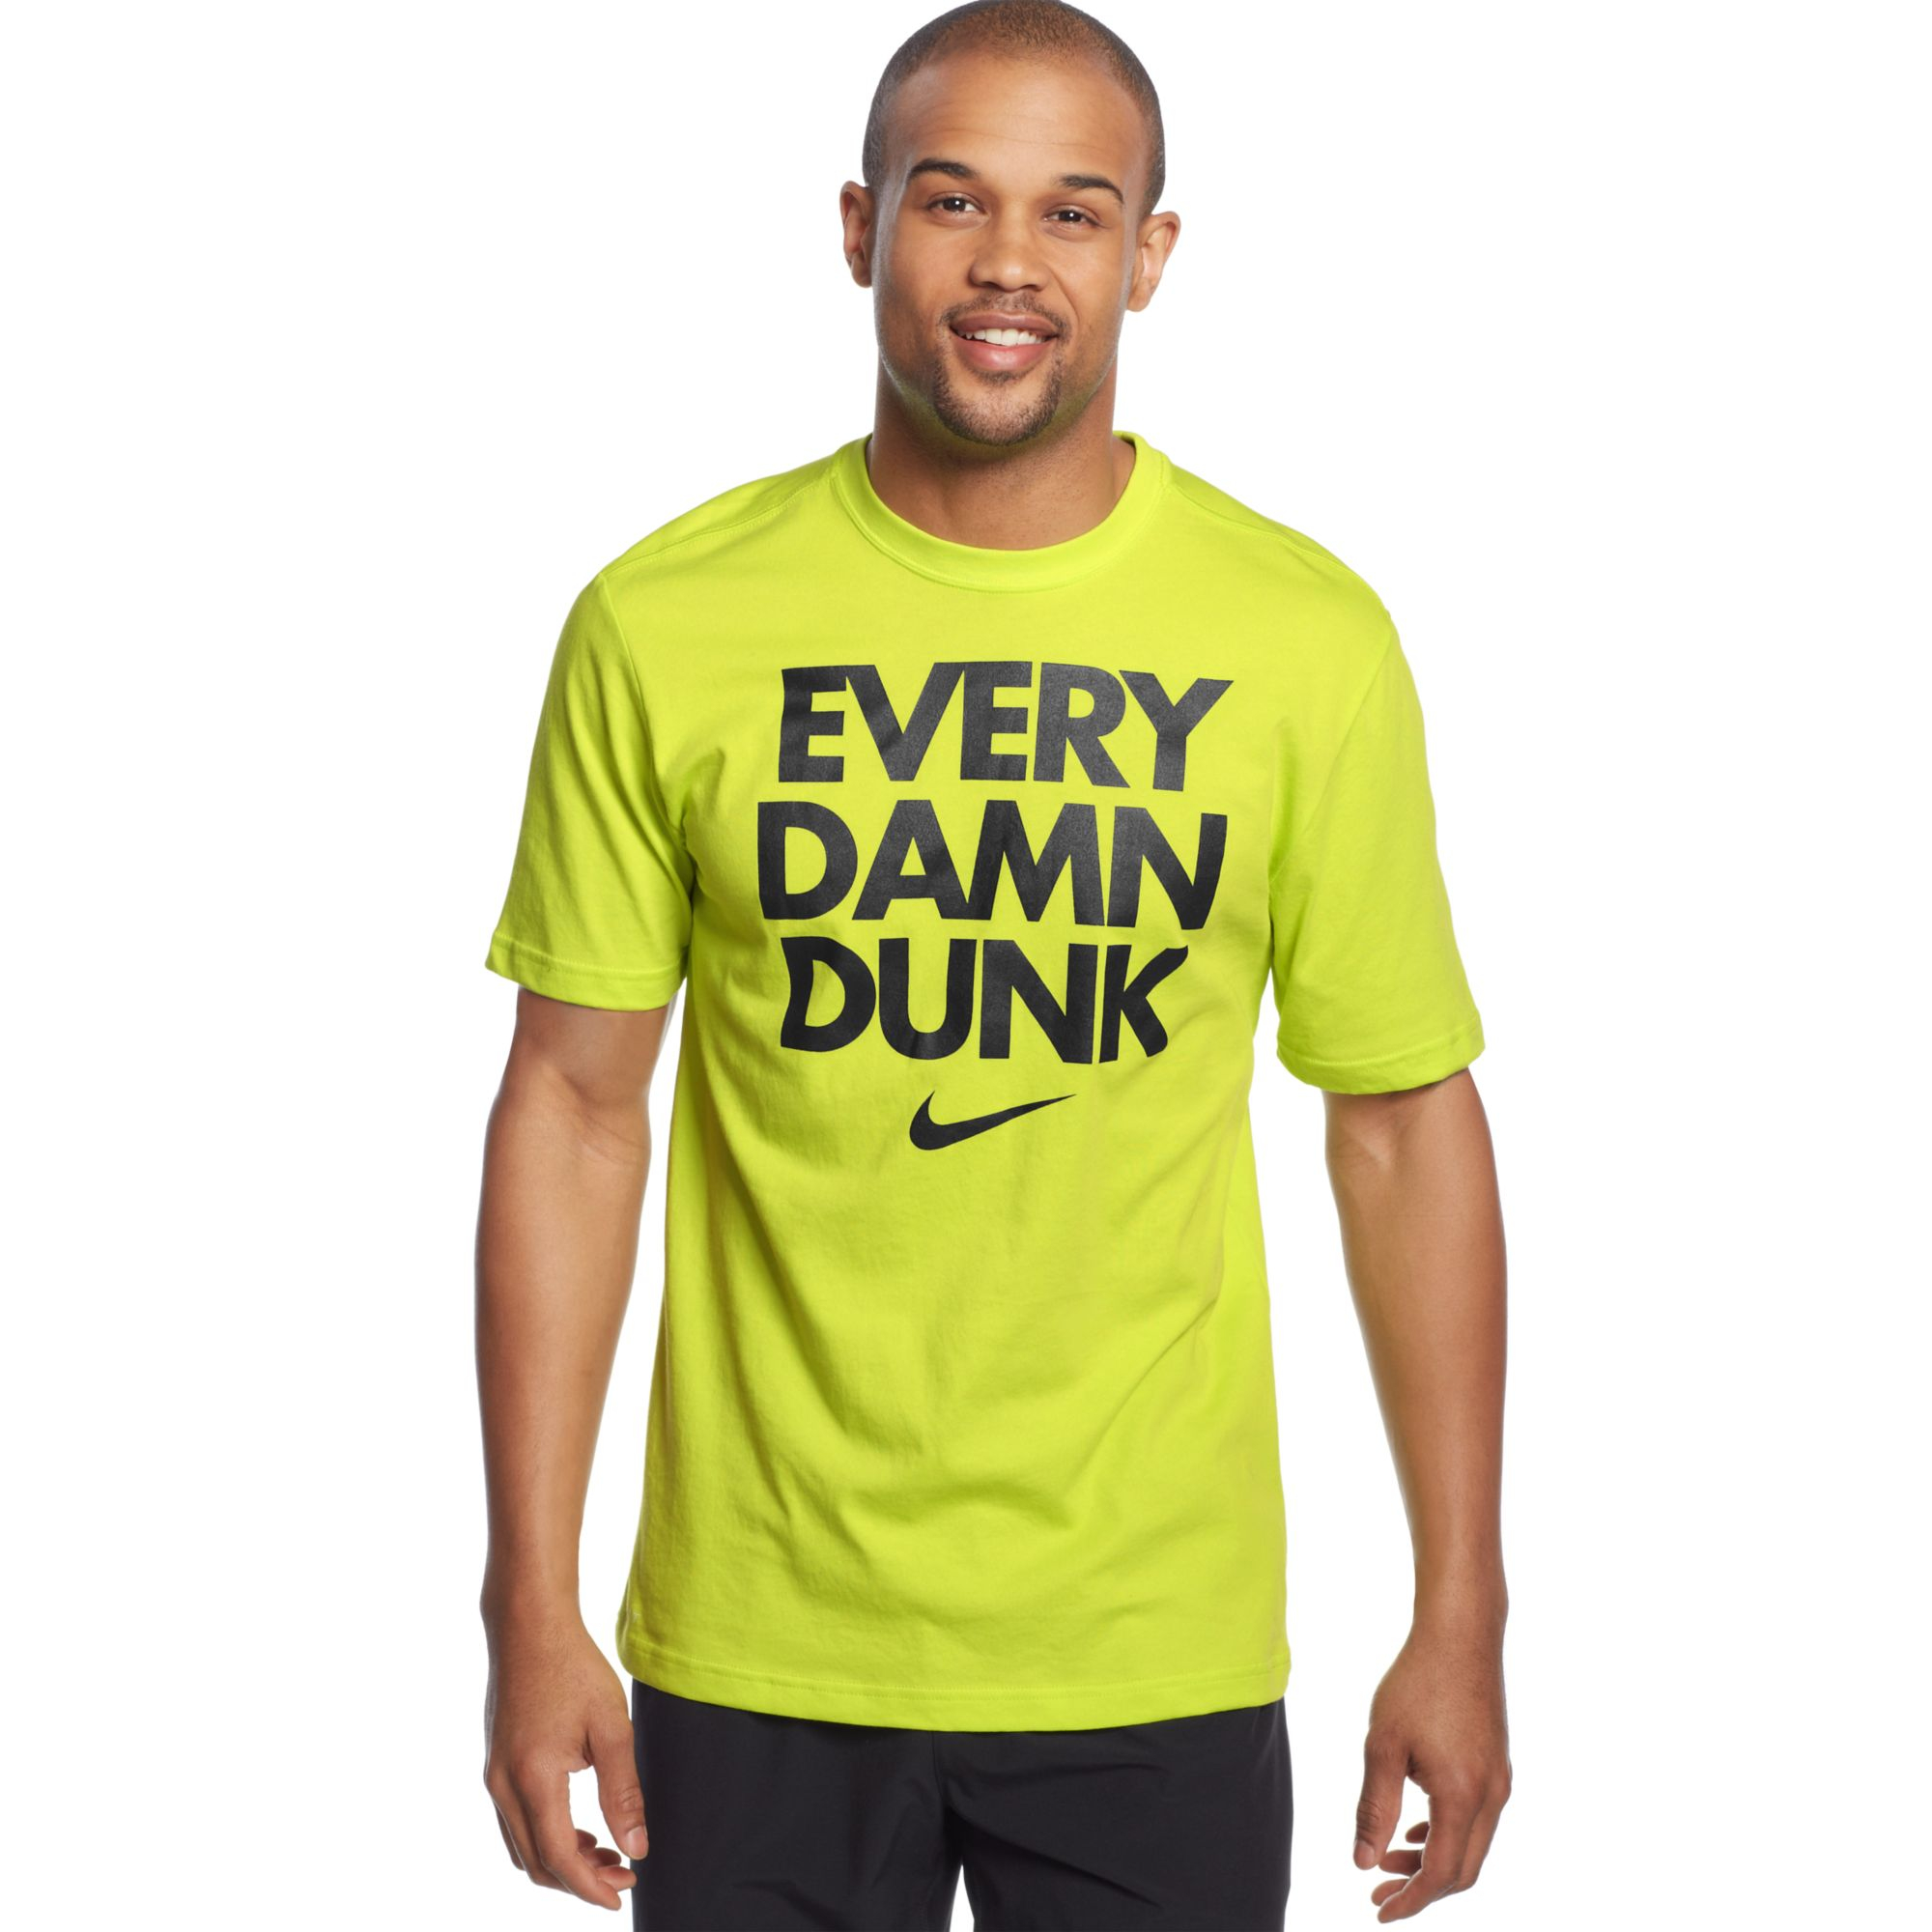 nike every damn dunk tshirt in green for men cyberblack